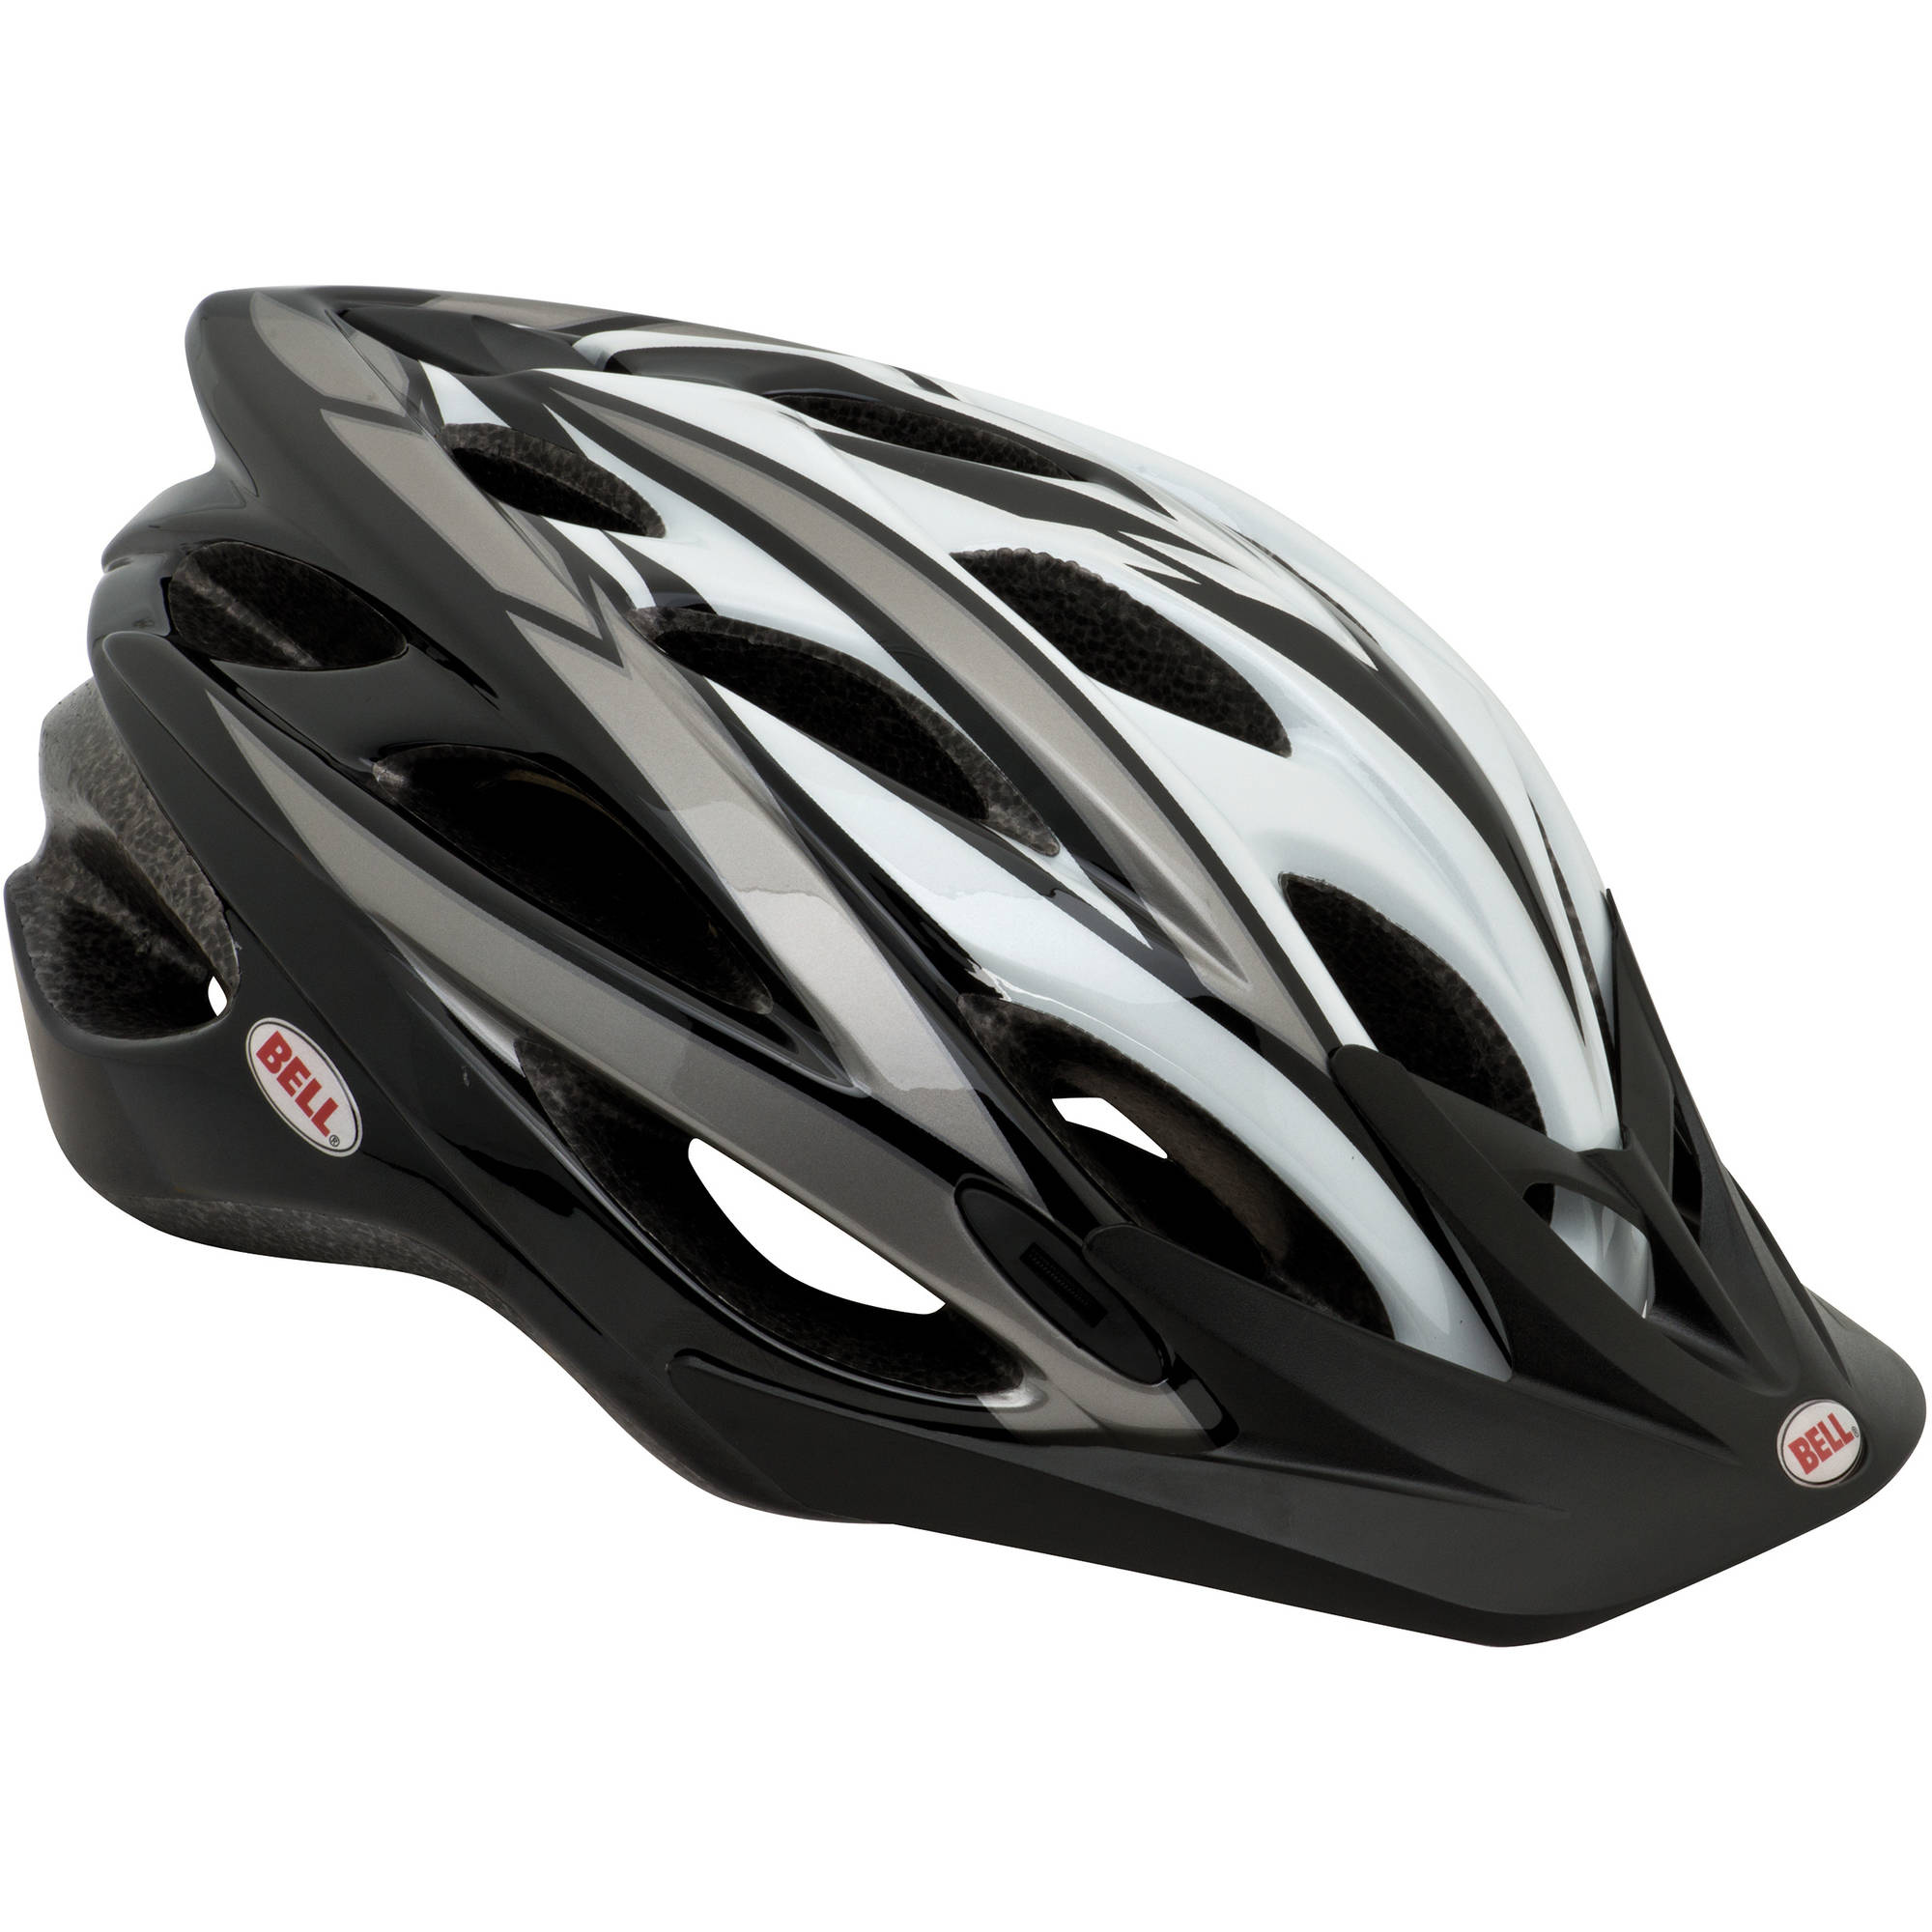 Bell Sports 7049720 Explorer Adult Helmet, Black/White